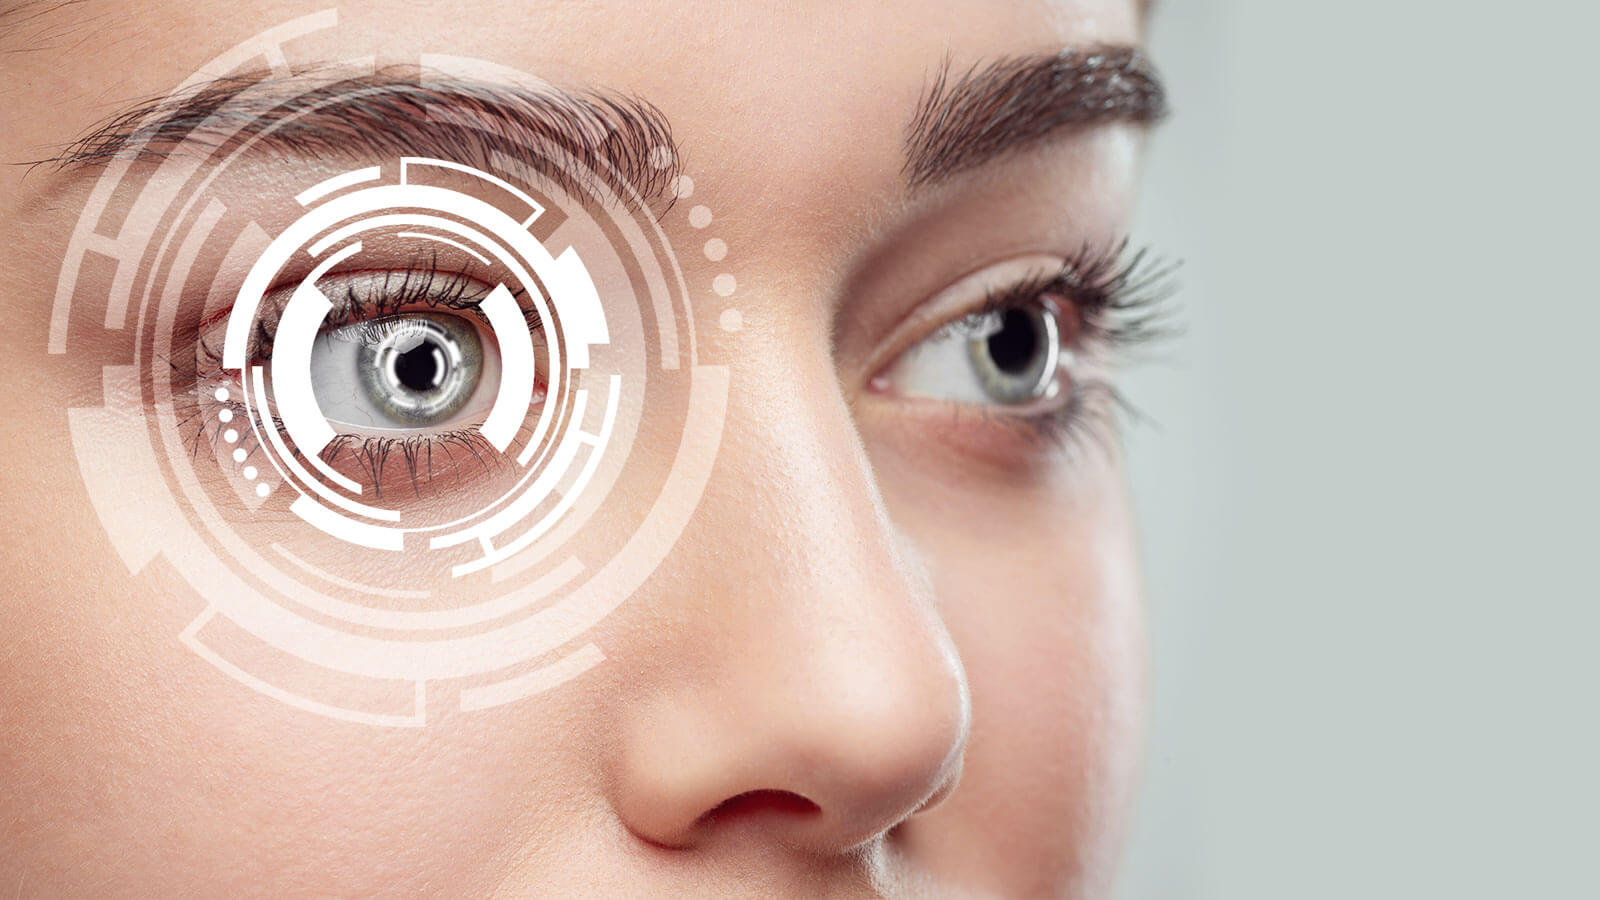 Lasik Surgery & its benefits – Is it worth getting under the knife?